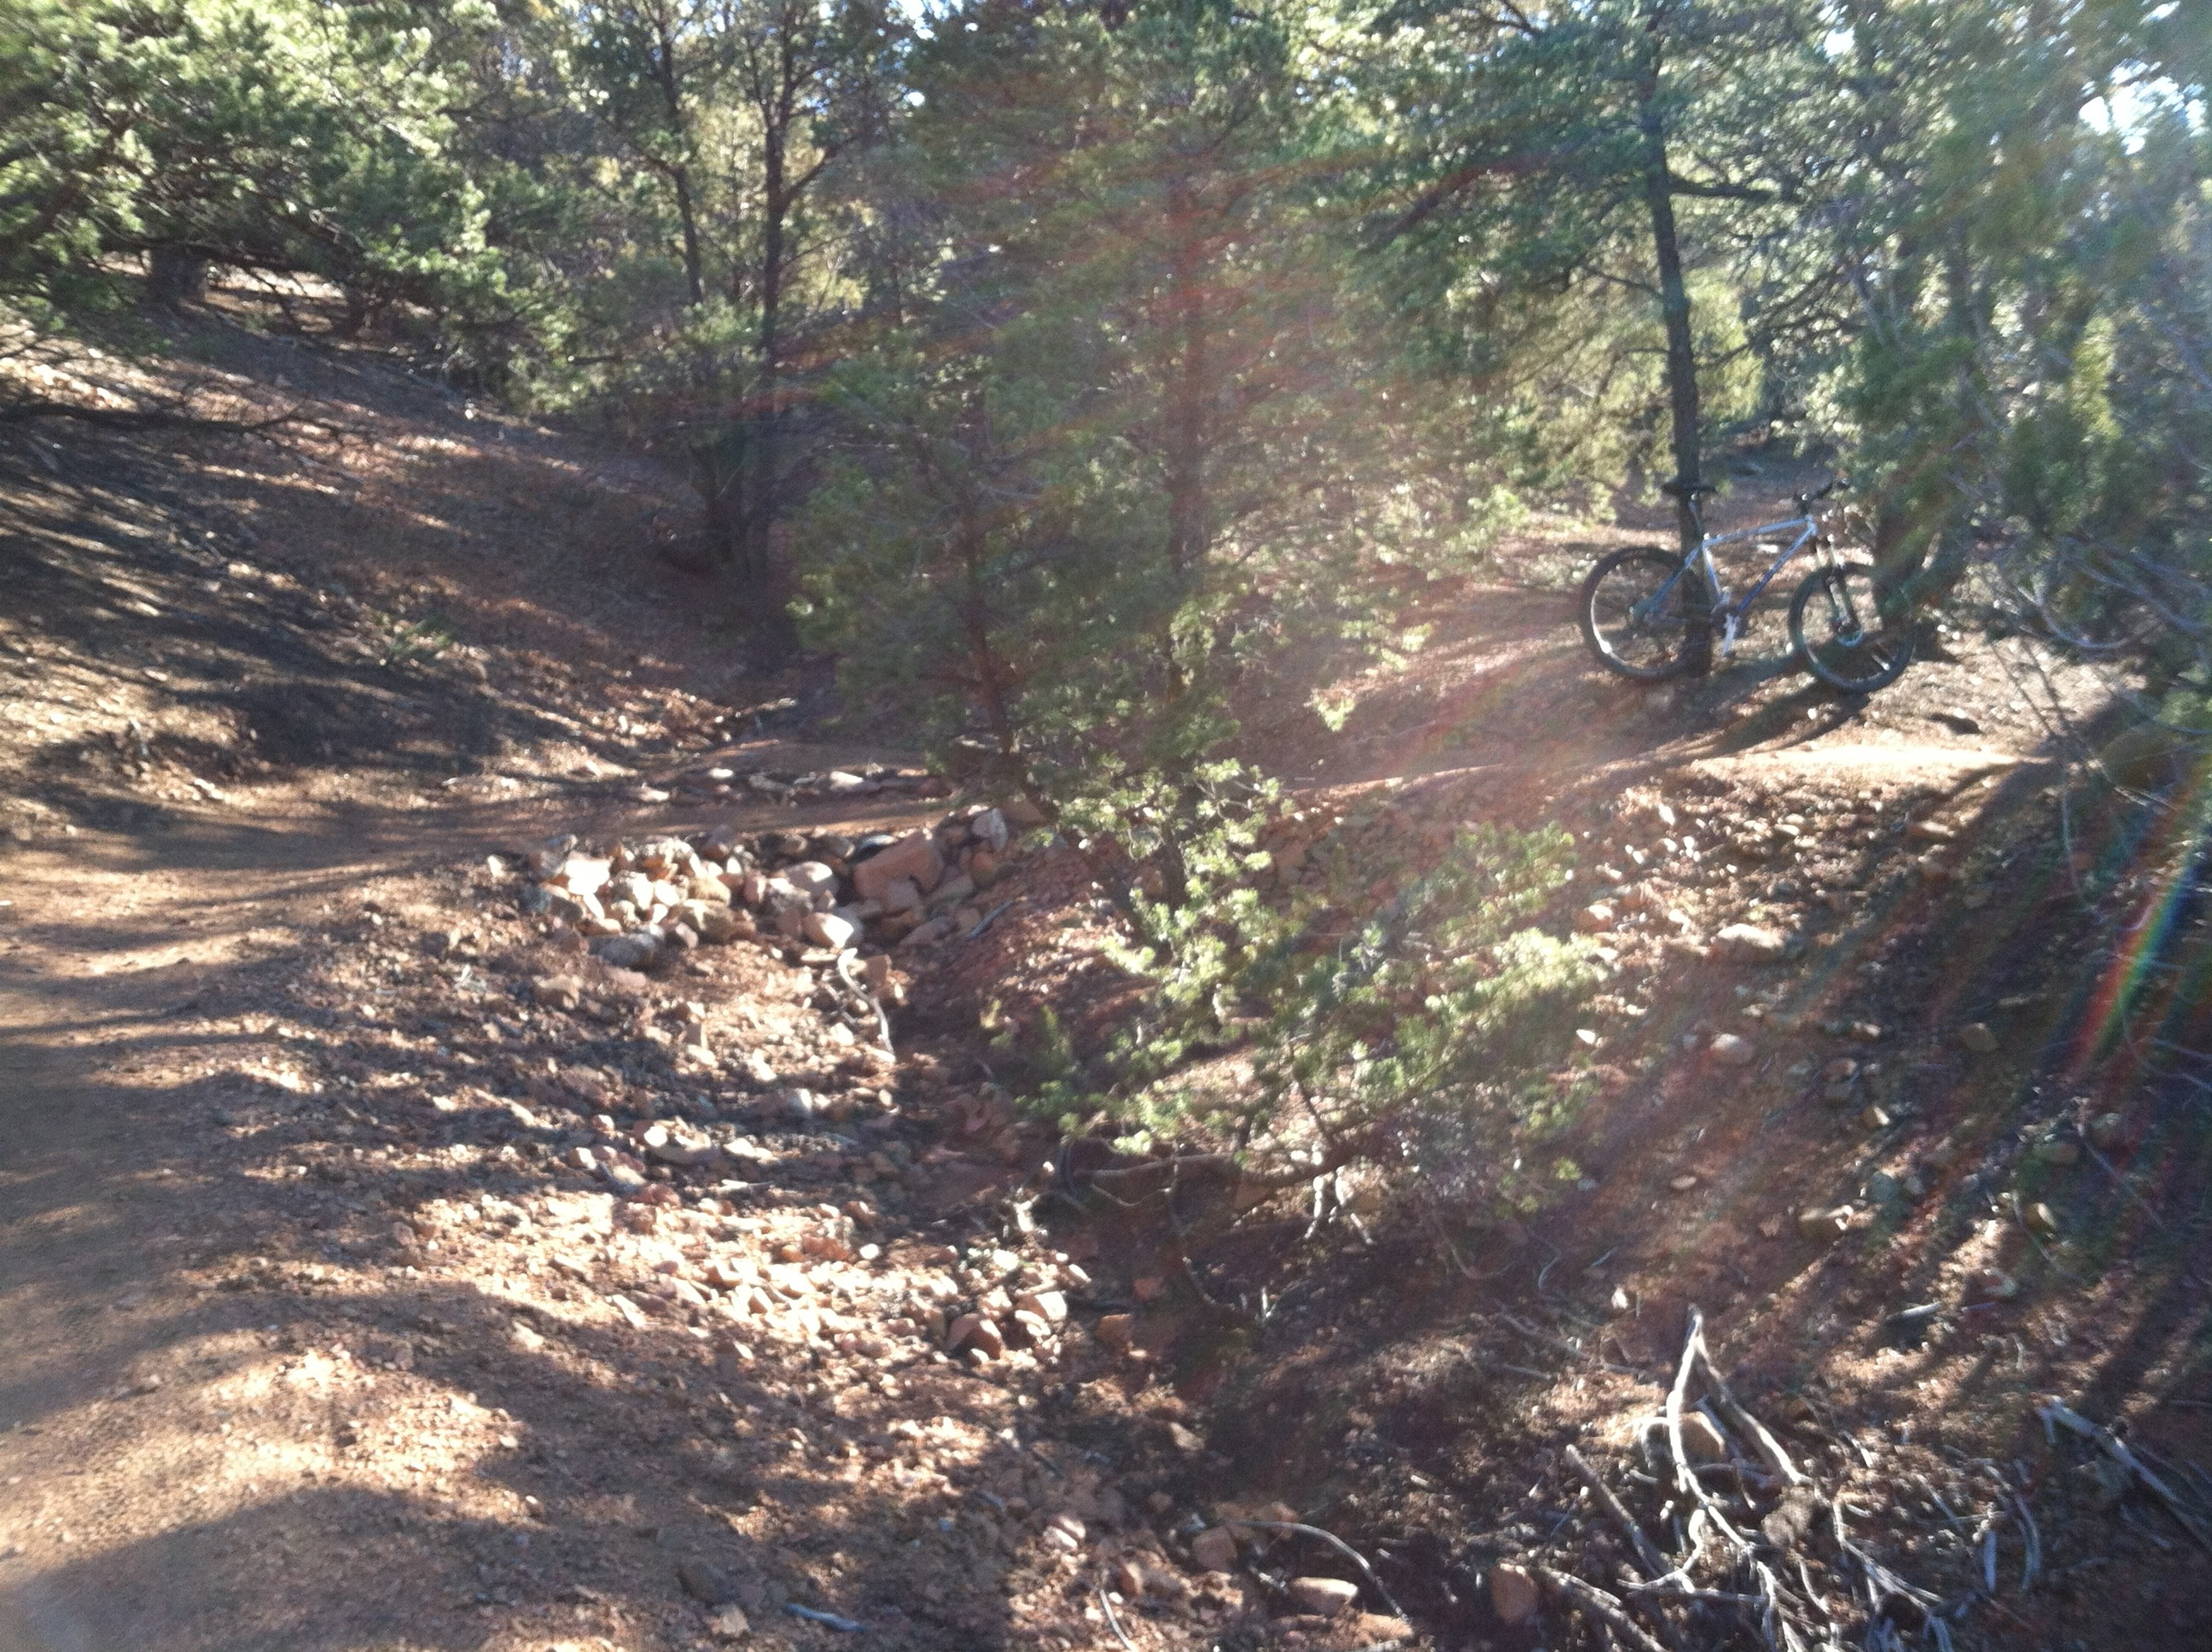 This here's the Dale Ball trail in Santa Fe. It was fun, rolly, and fast. Not real technical, but goddamn fun.